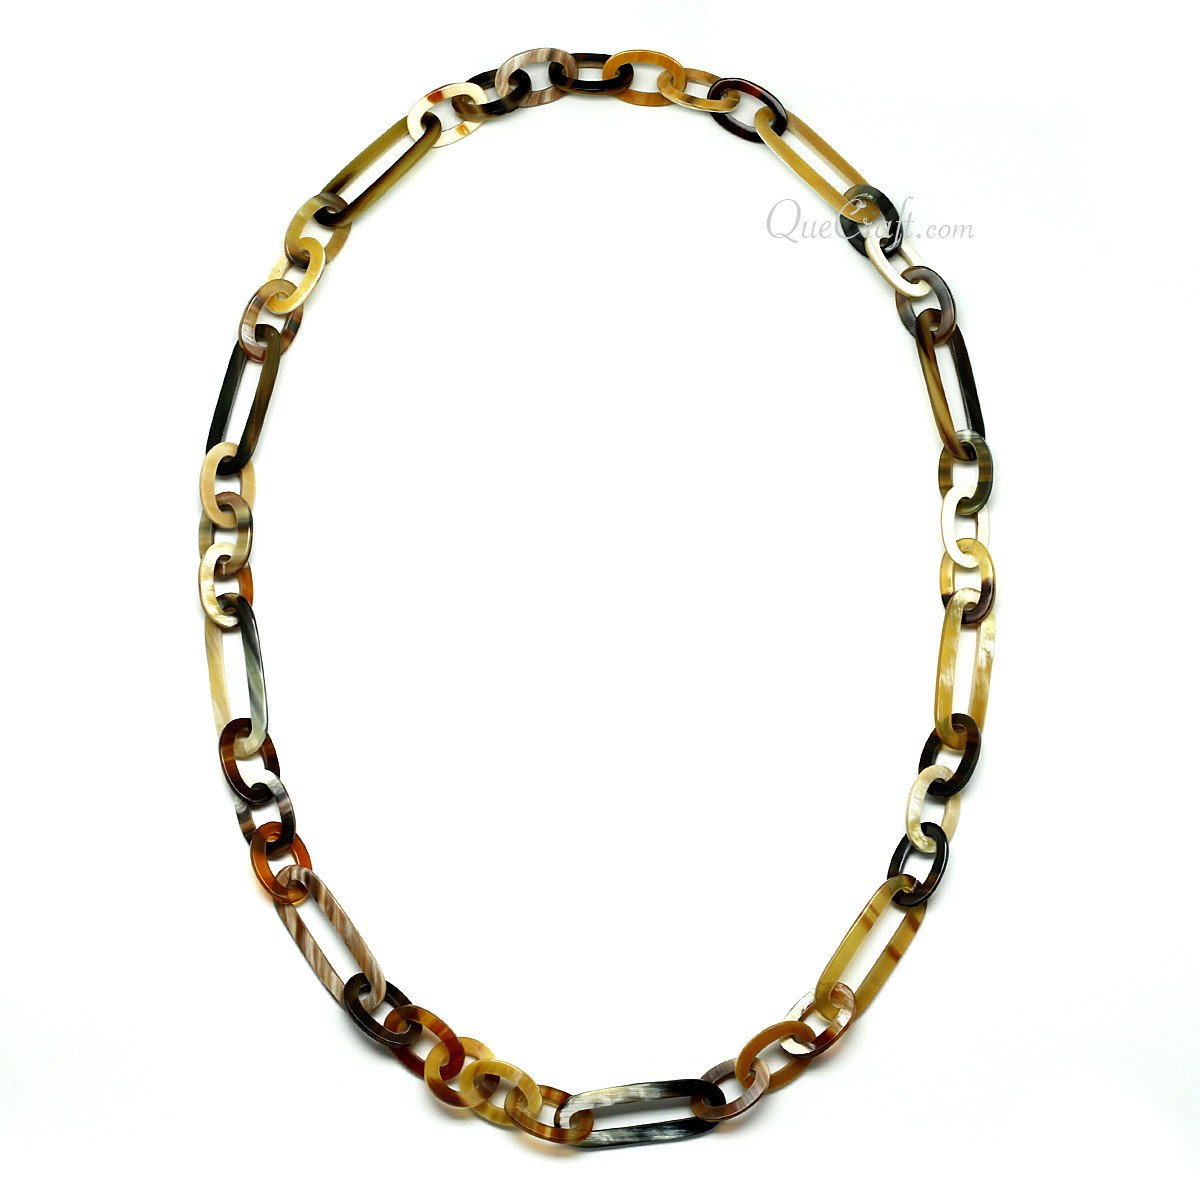 Horn Chain Necklace #11619 - HORN.JEWELRY by QueCraft